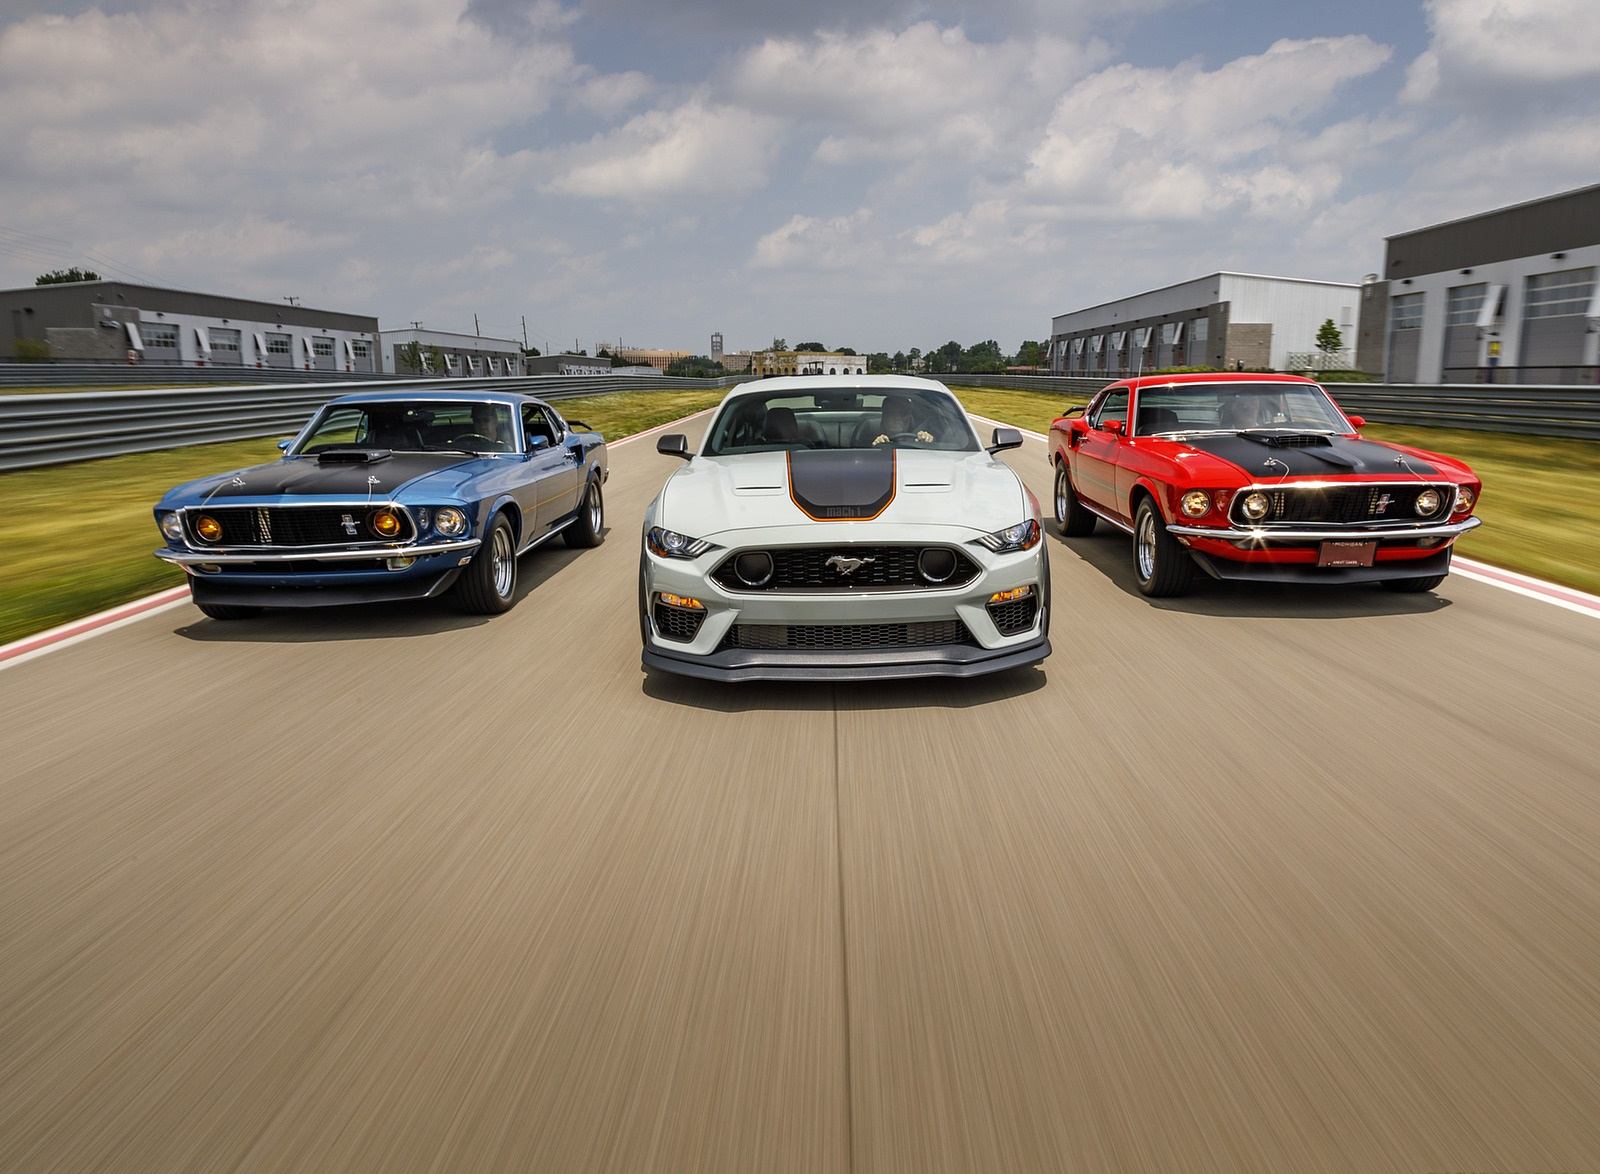 2021 Ford Mustang Mach 1 and 1969 Mach 1 Wallpapers (8)